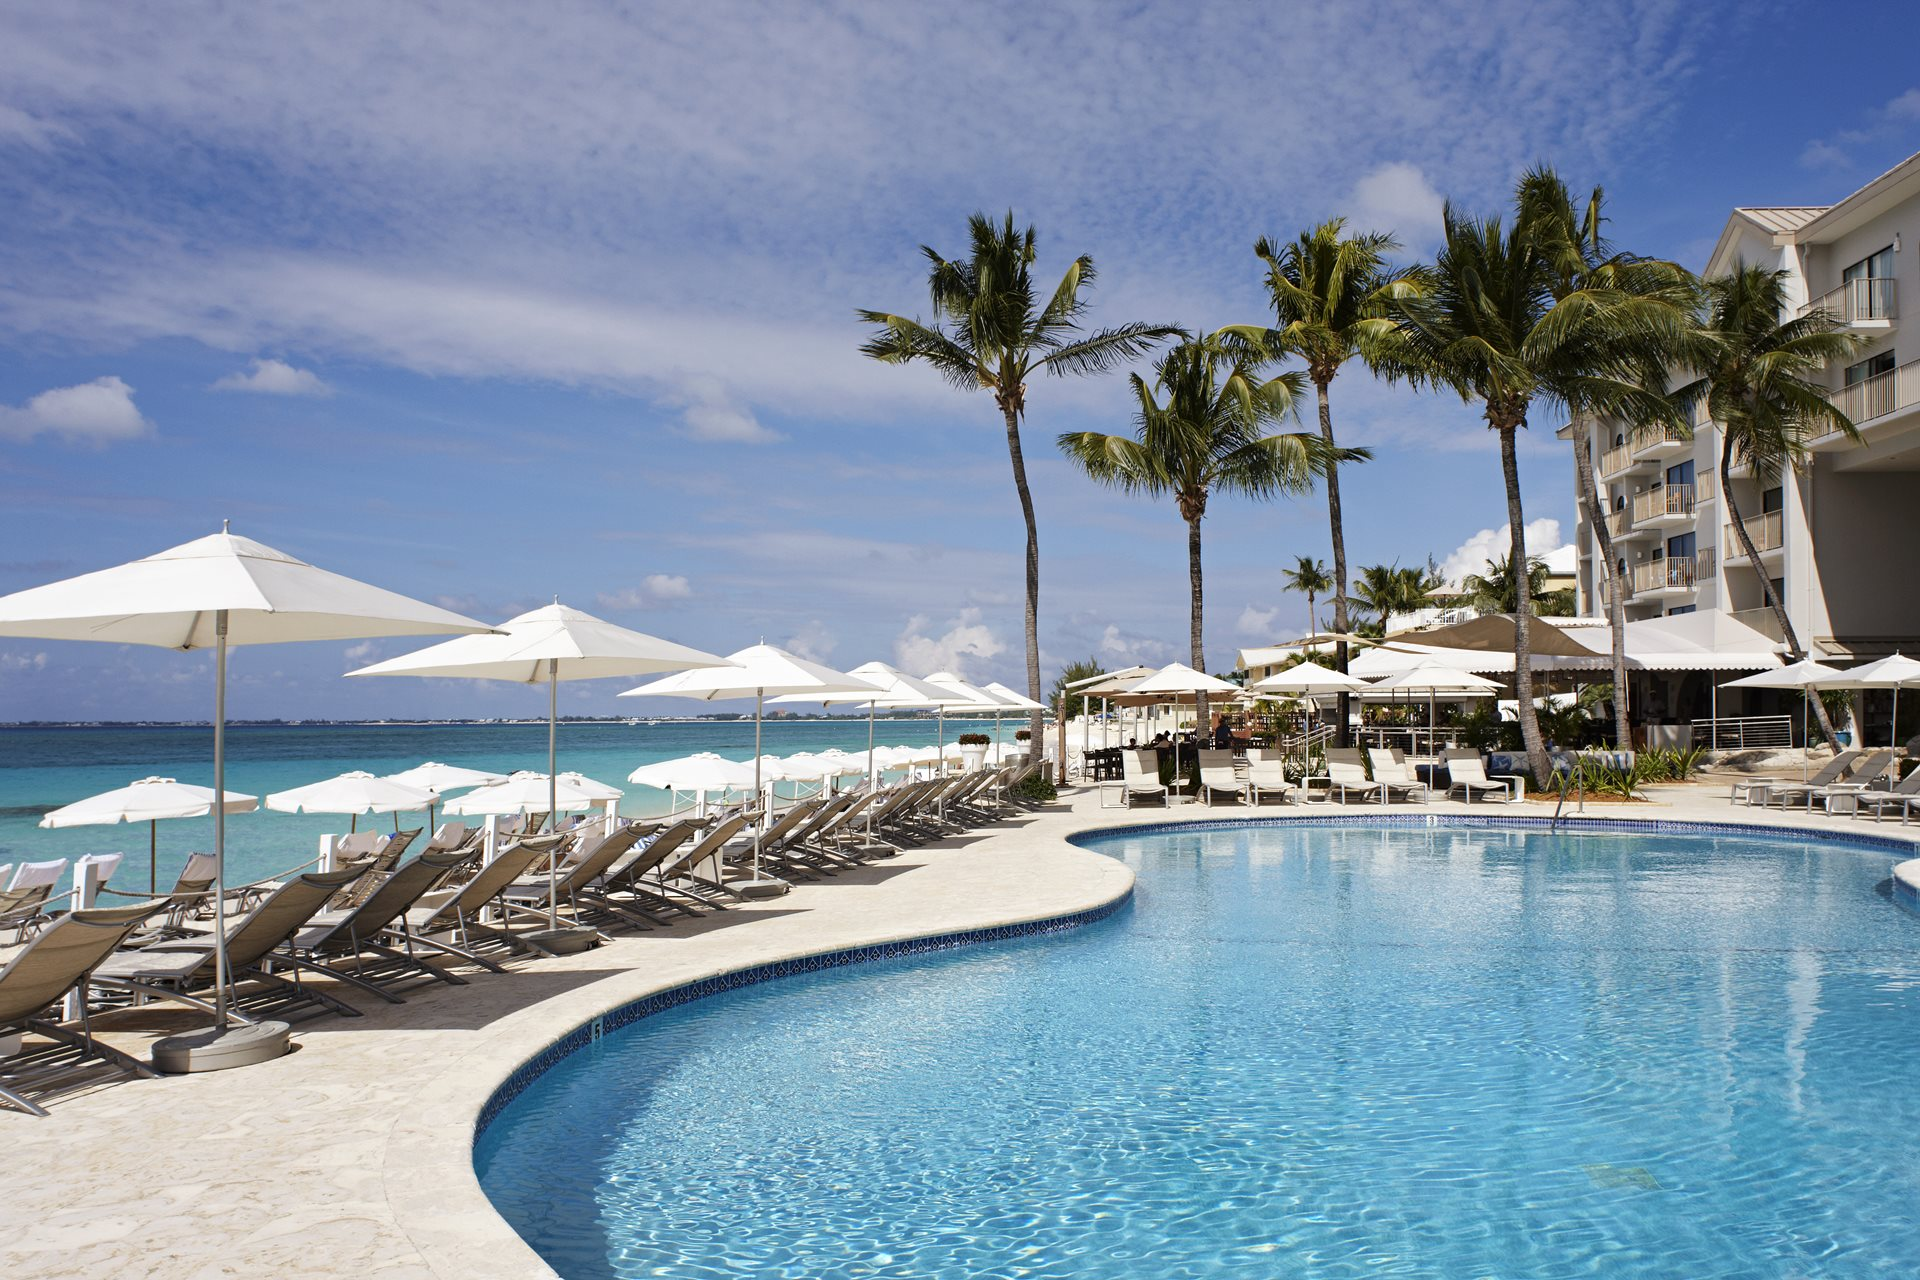 Revel in relaxation and feel right at home at this resort, located on the scenic Seven Mile Beach.